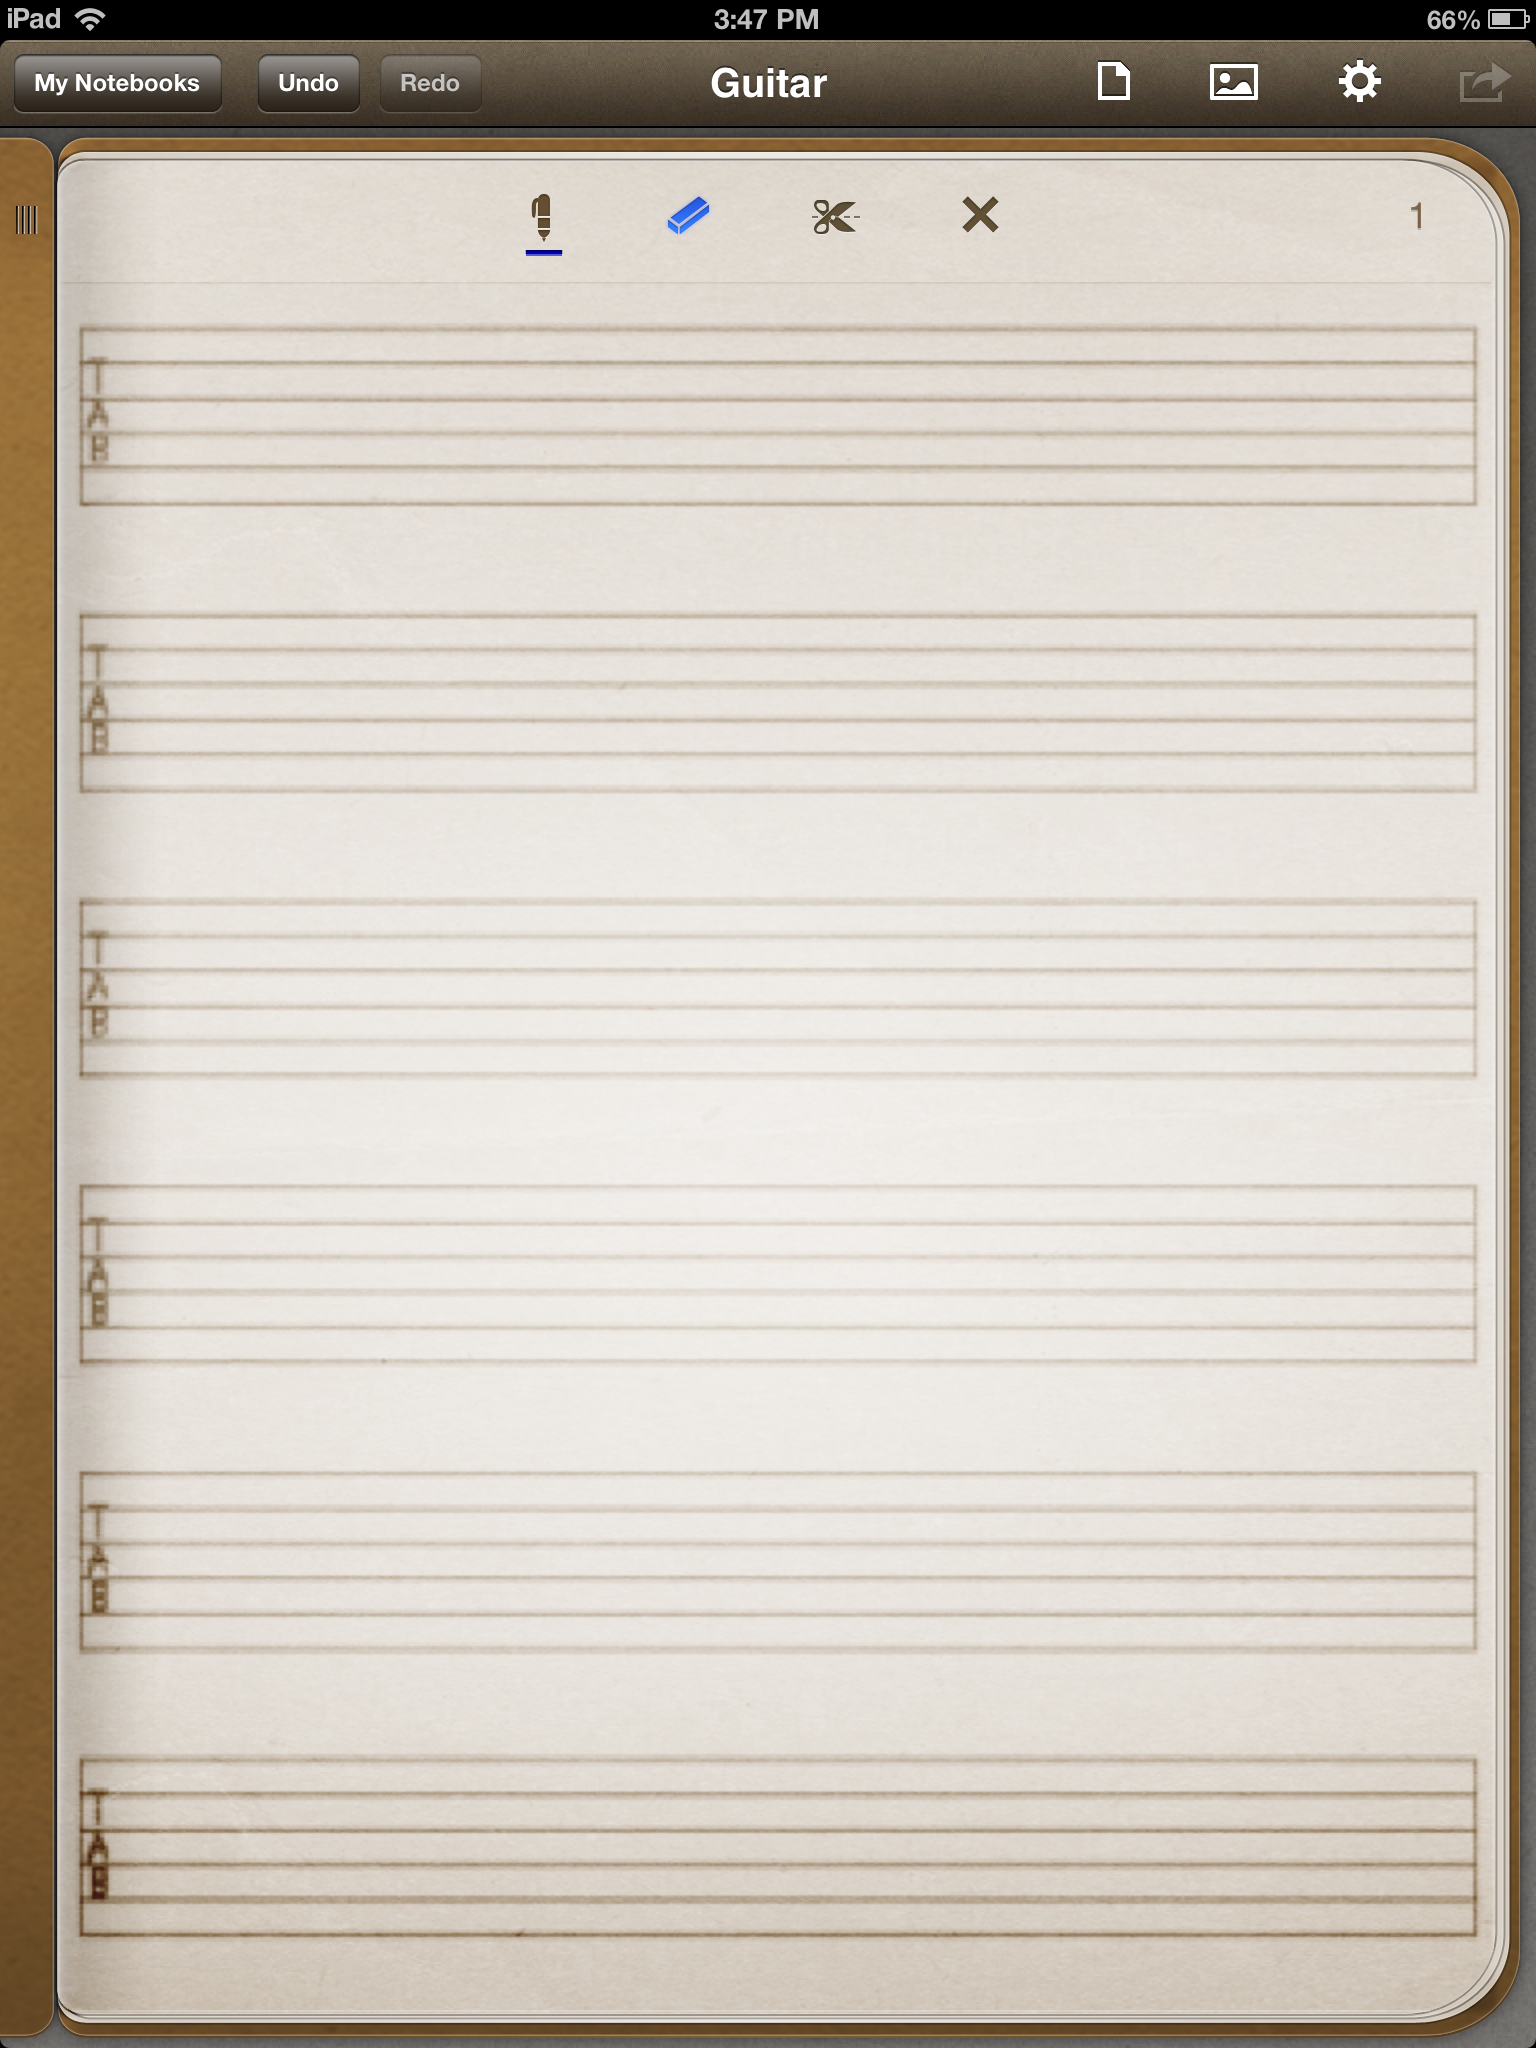 iPadpapers music paper templates – Music Paper Template